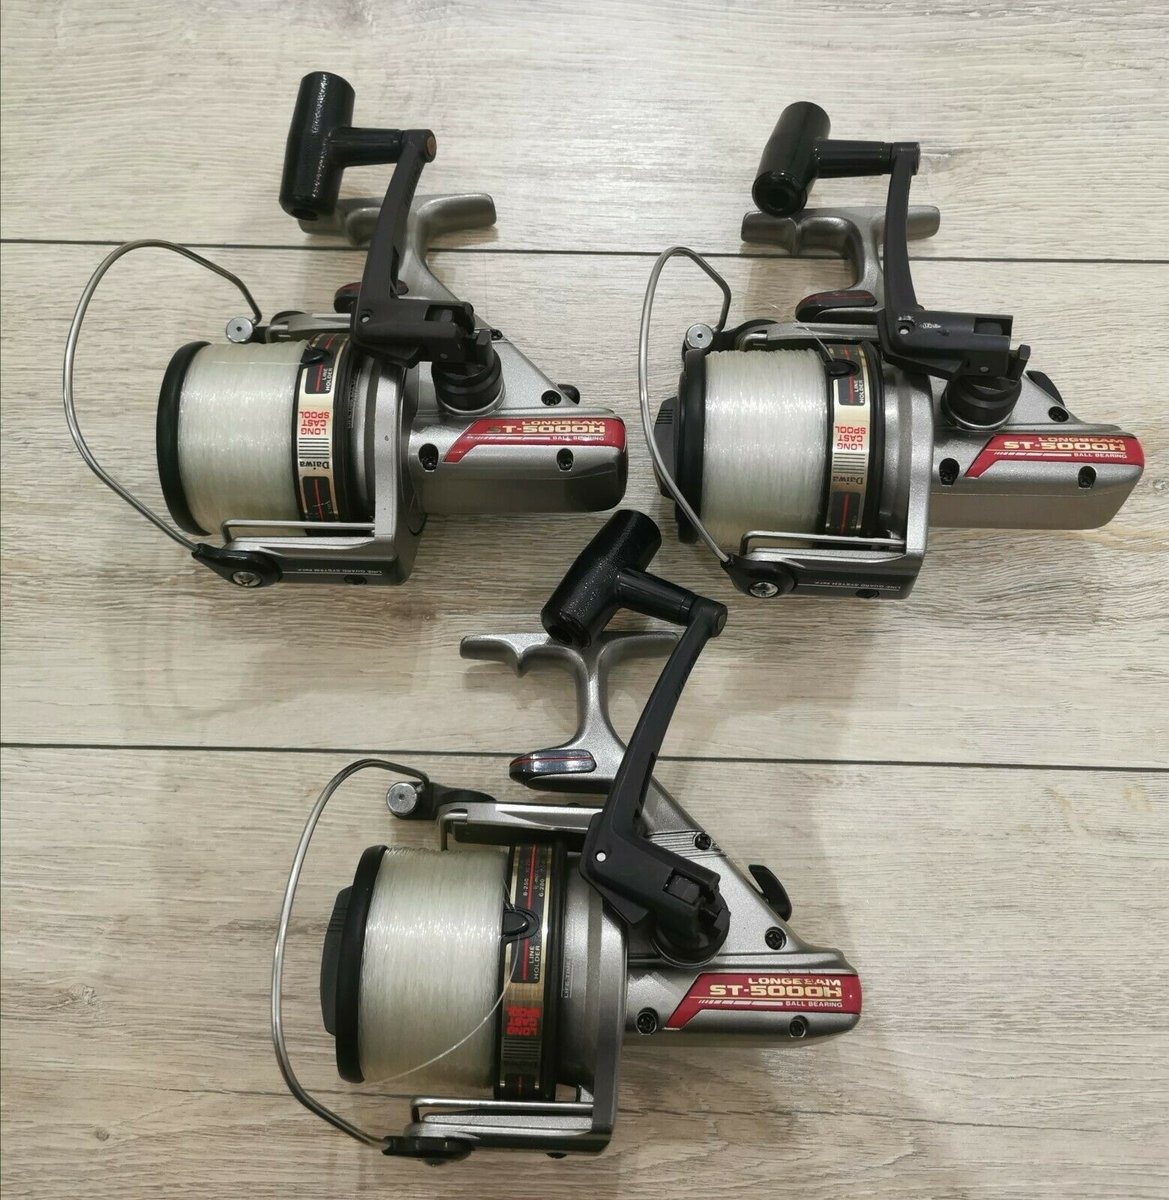 Ad - Daiwa Longbeam ST5000H Reels x3 On eBay here -->> https://t.co/IucoBYTlWy  #carpfishing h